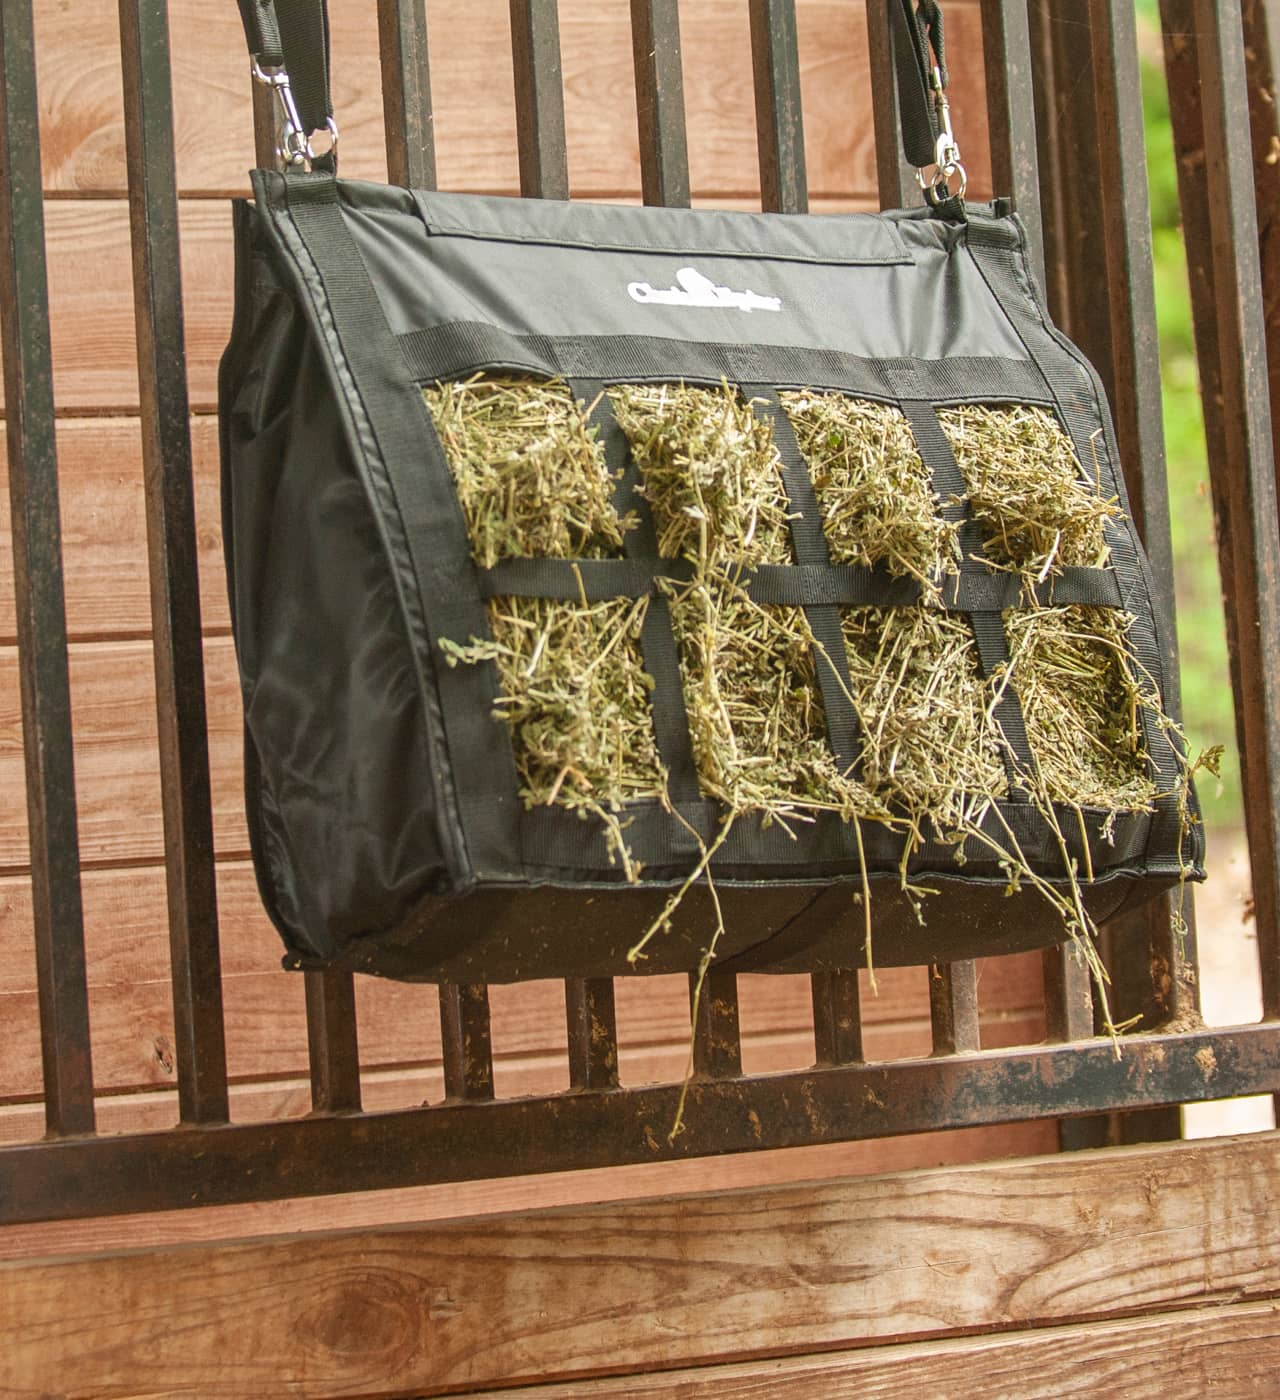 Classic Equine Hay Bags provide hay for horses in the barn or while traveling